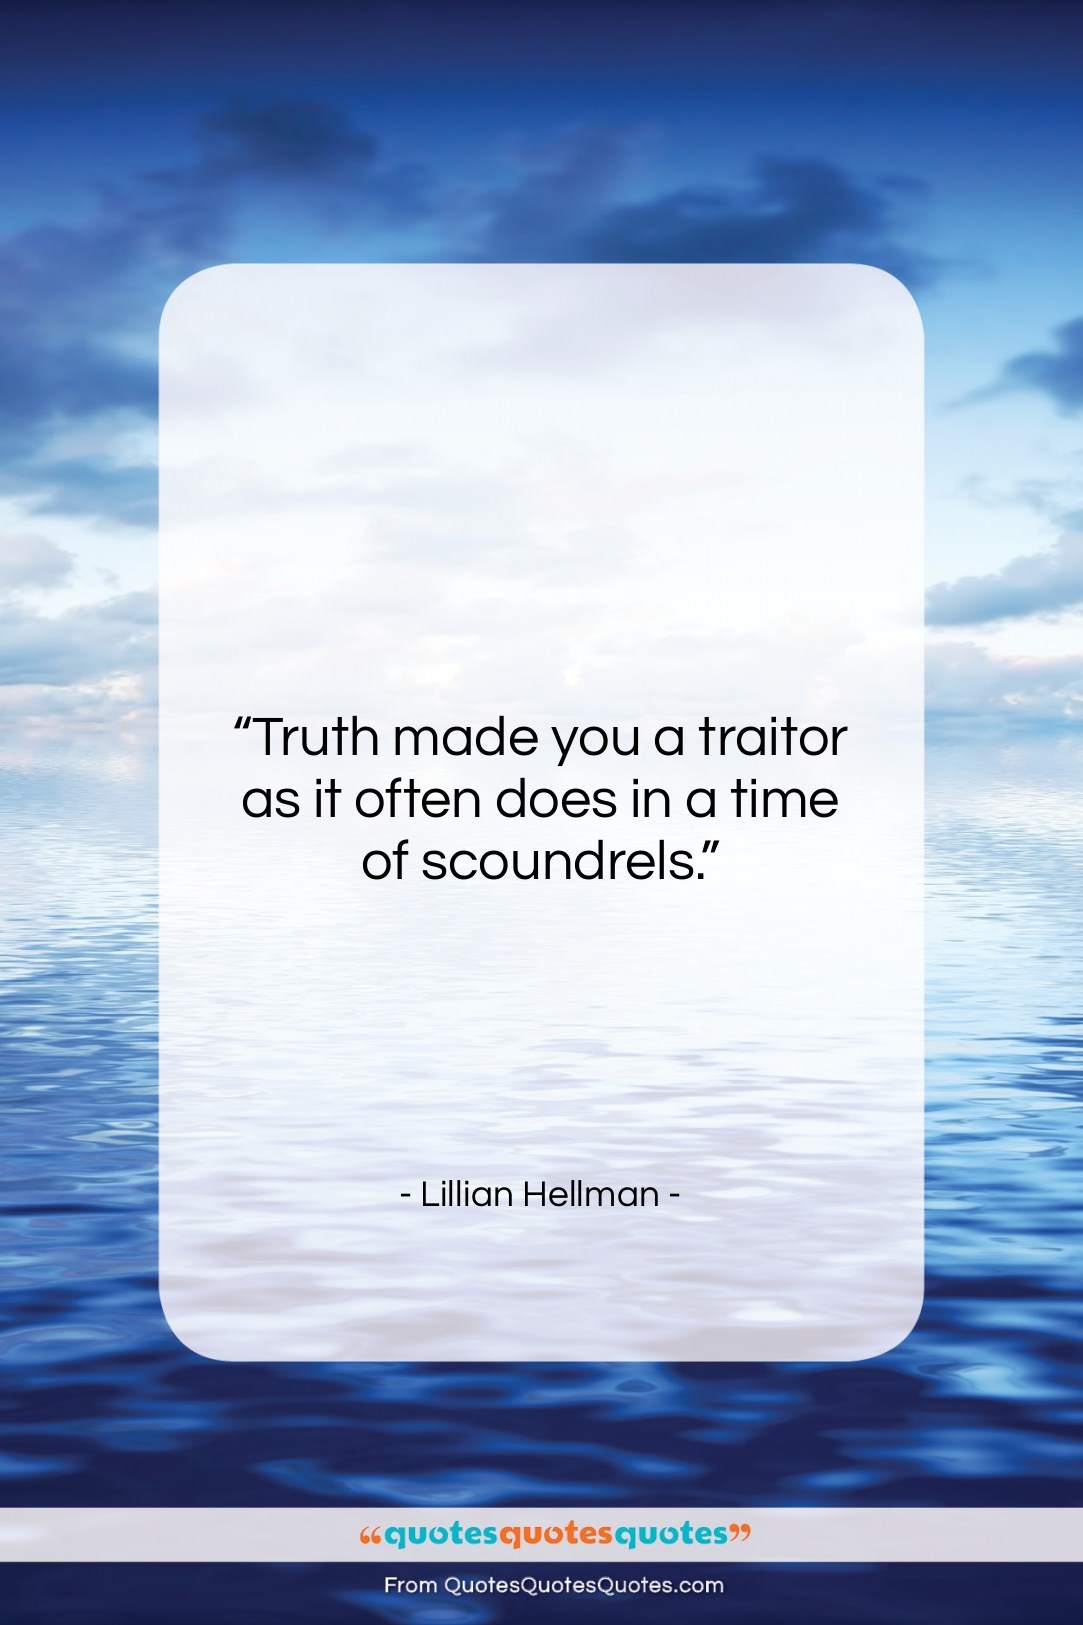 """Lillian Hellman quote: """"Truth made you a traitor as it…""""- at QuotesQuotesQuotes.com"""